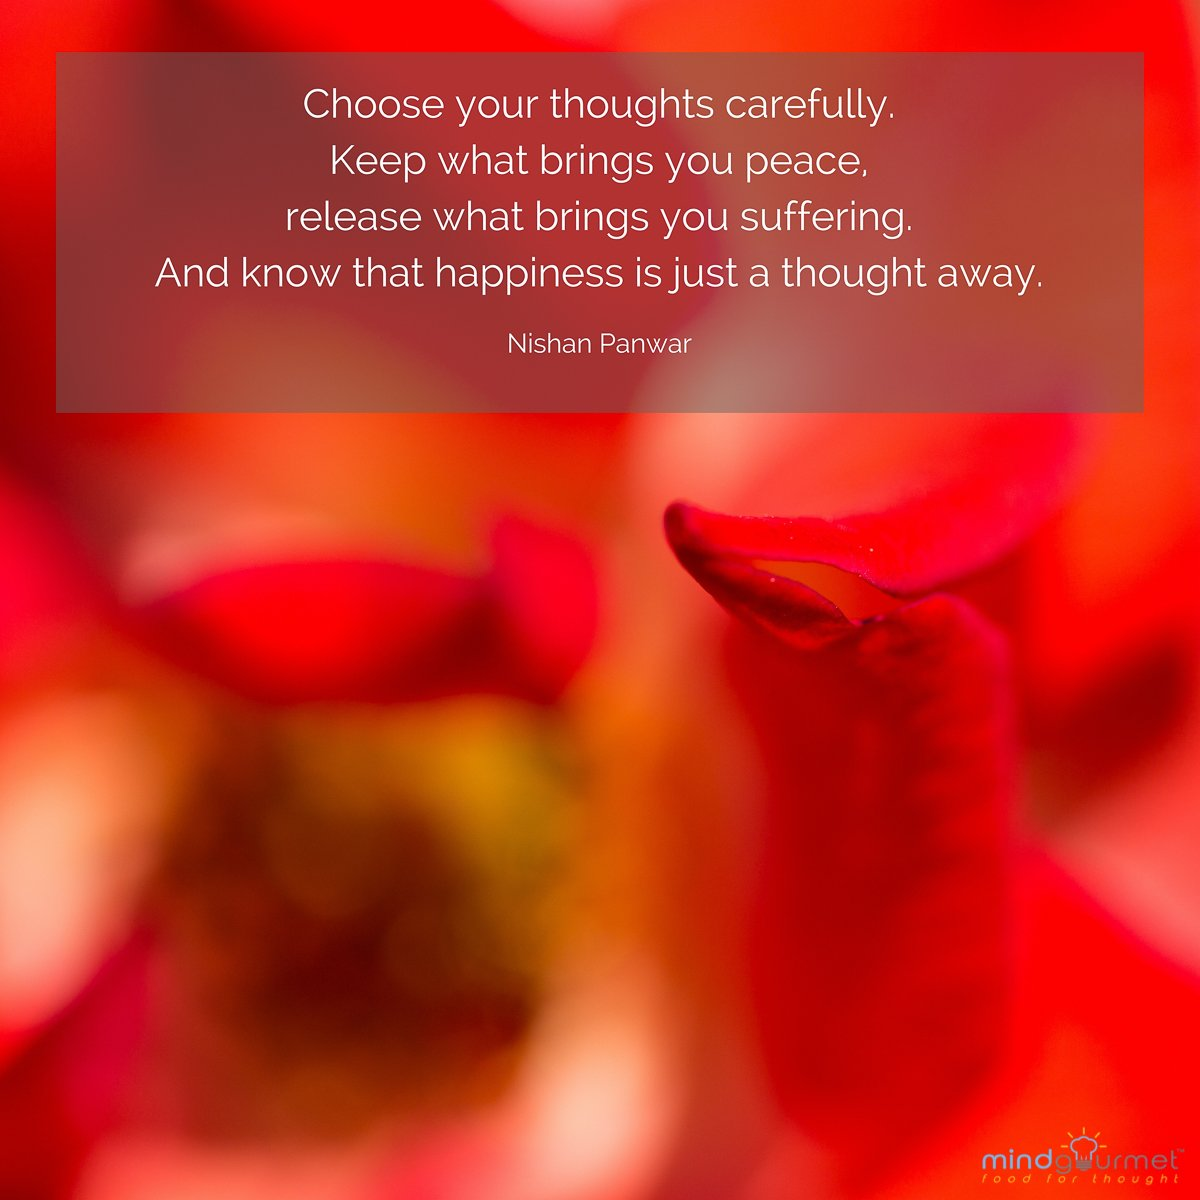 Choose your thoughts carefully. Keep what brings you peace, release what brings you .... - Nissan Panwar  #NissanPanwar #innerpeace #peace <br>http://pic.twitter.com/F2SLLCnLYa